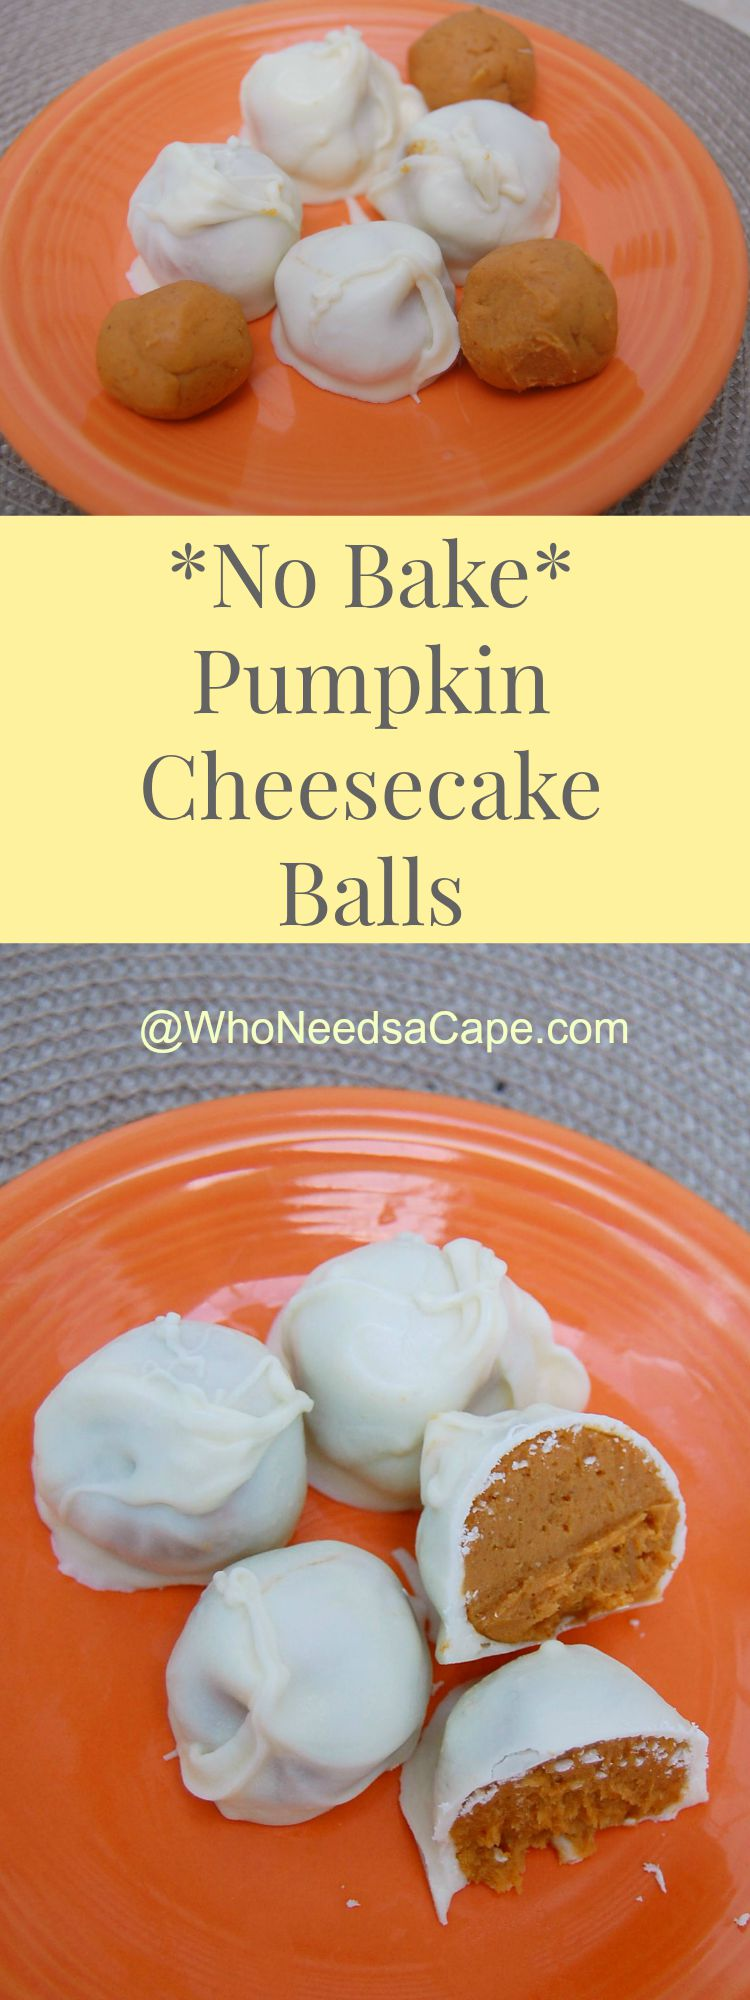 No Bake Pumpkin Cheesecake Balls 3